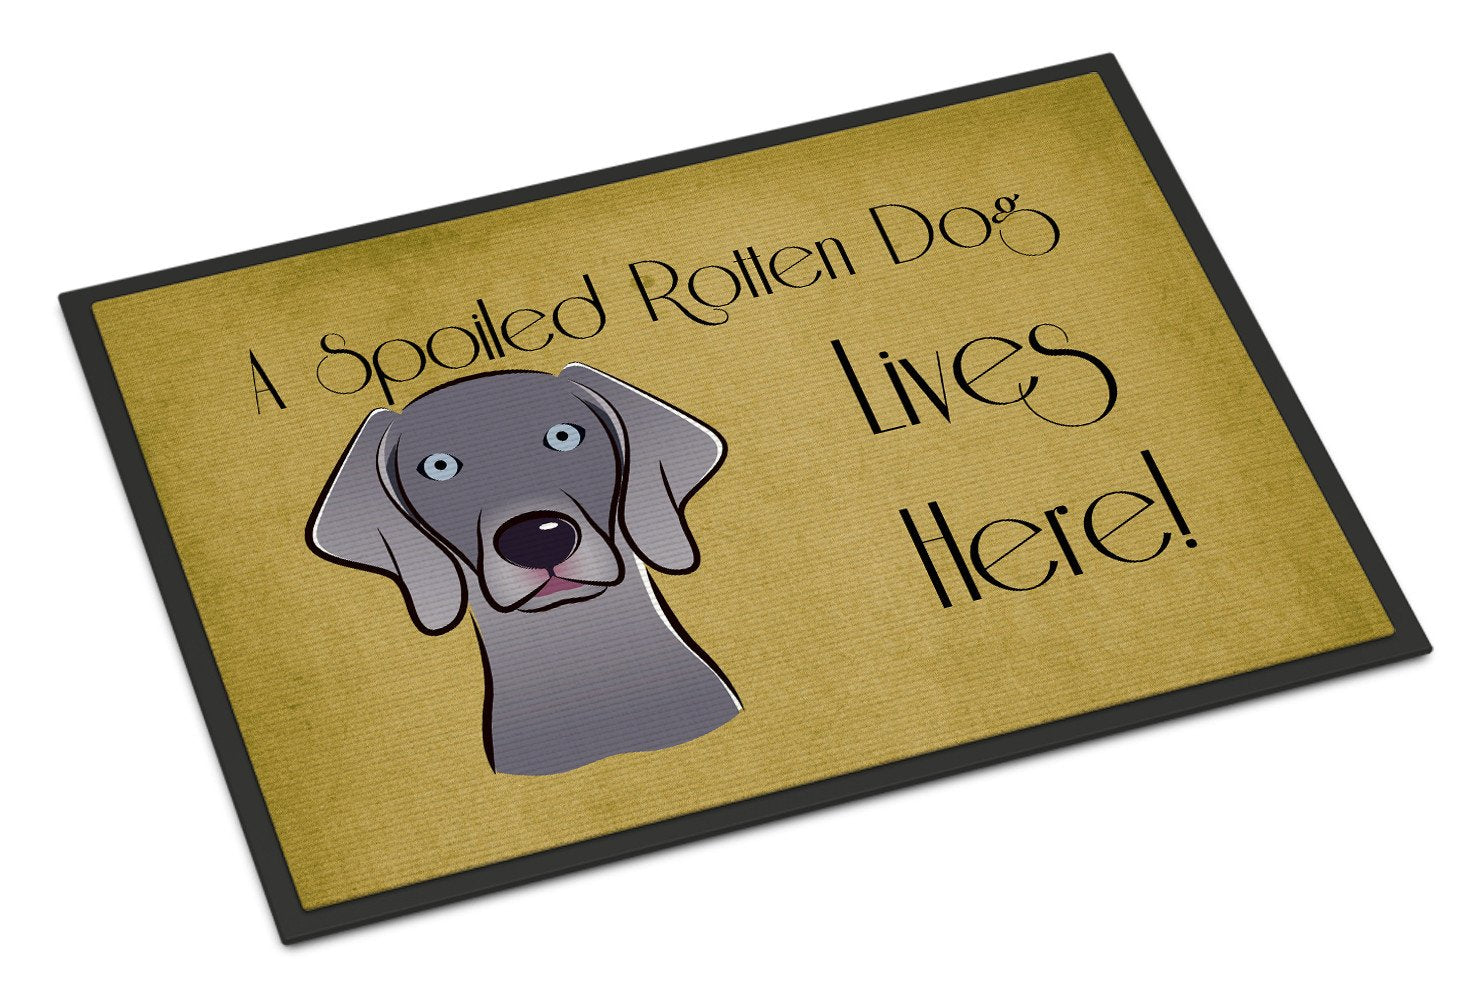 Weimaraner Spoiled Dog Lives Here Indoor or Outdoor Mat 18x27 BB1479MAT - the-store.com